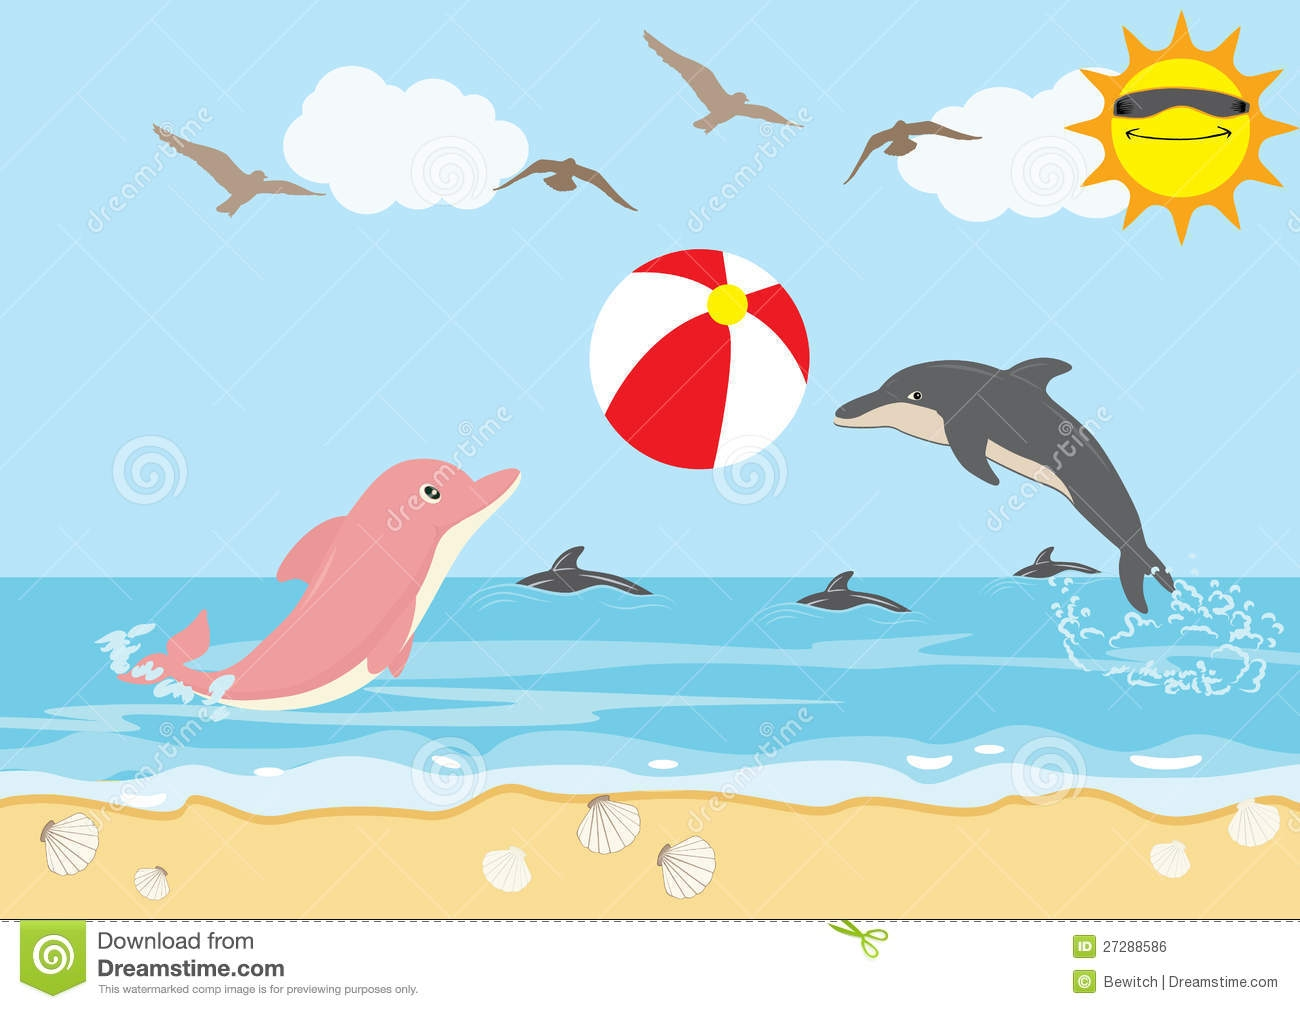 Beach holiday clipart 20 free Cliparts | Download images ...